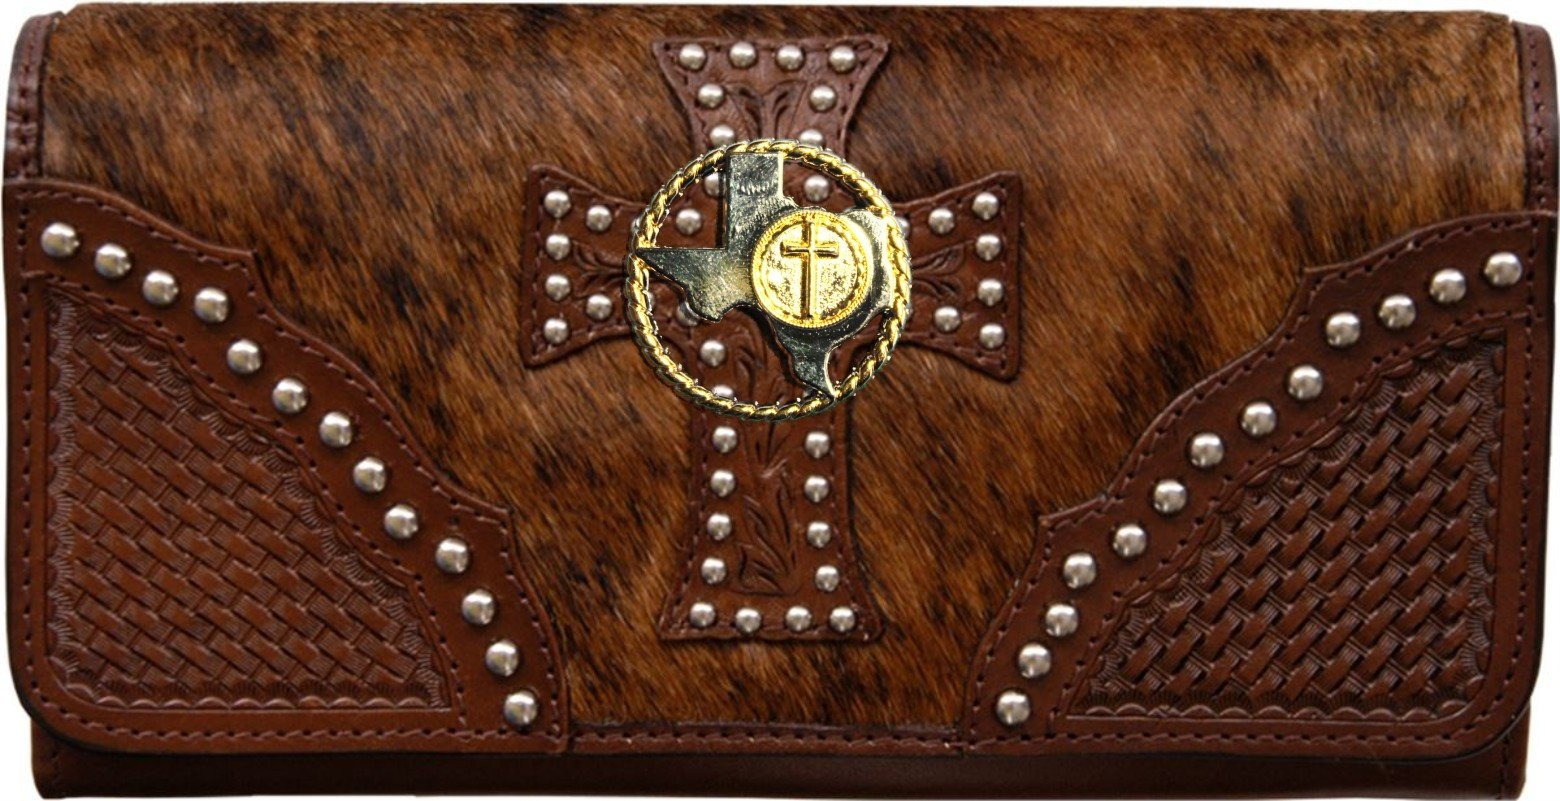 Custom Texas Rope and Cross Natural Hair Christian Clutch Wallet with removable checkbook